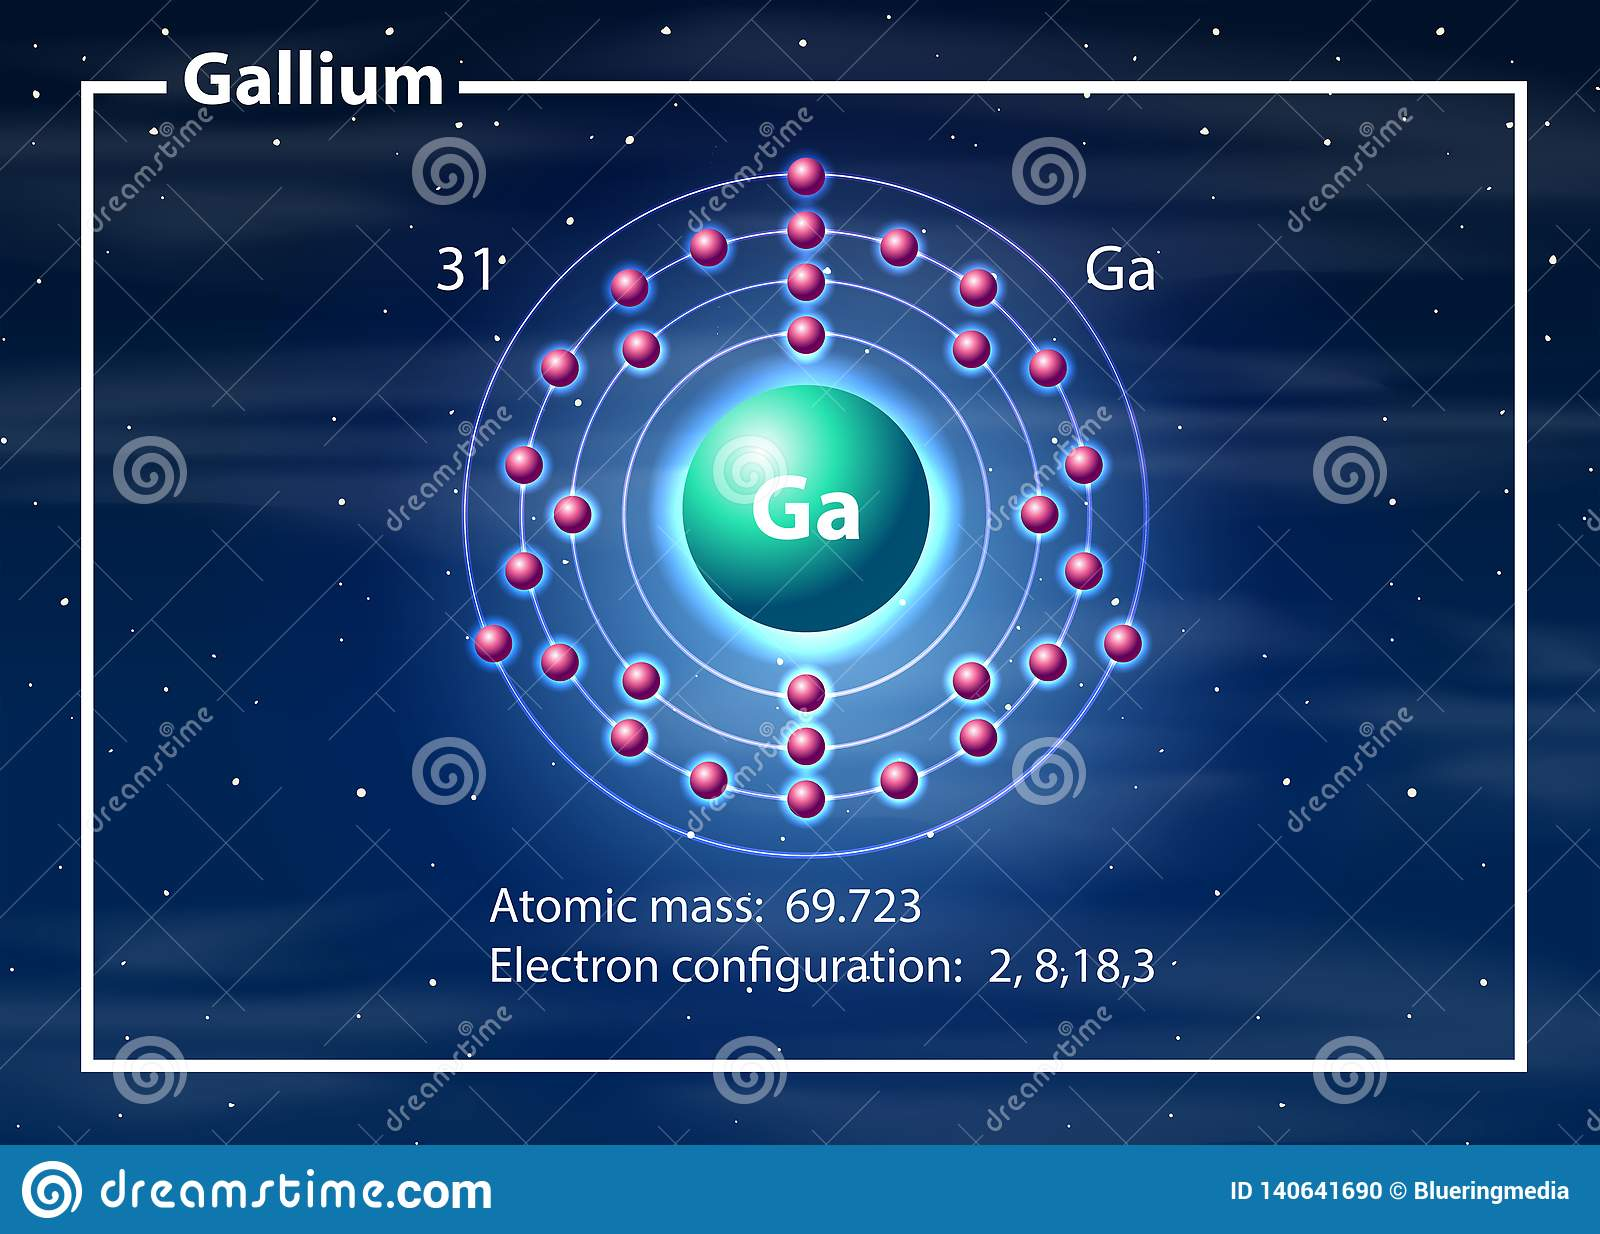 hight resolution of a gallium atom diagram